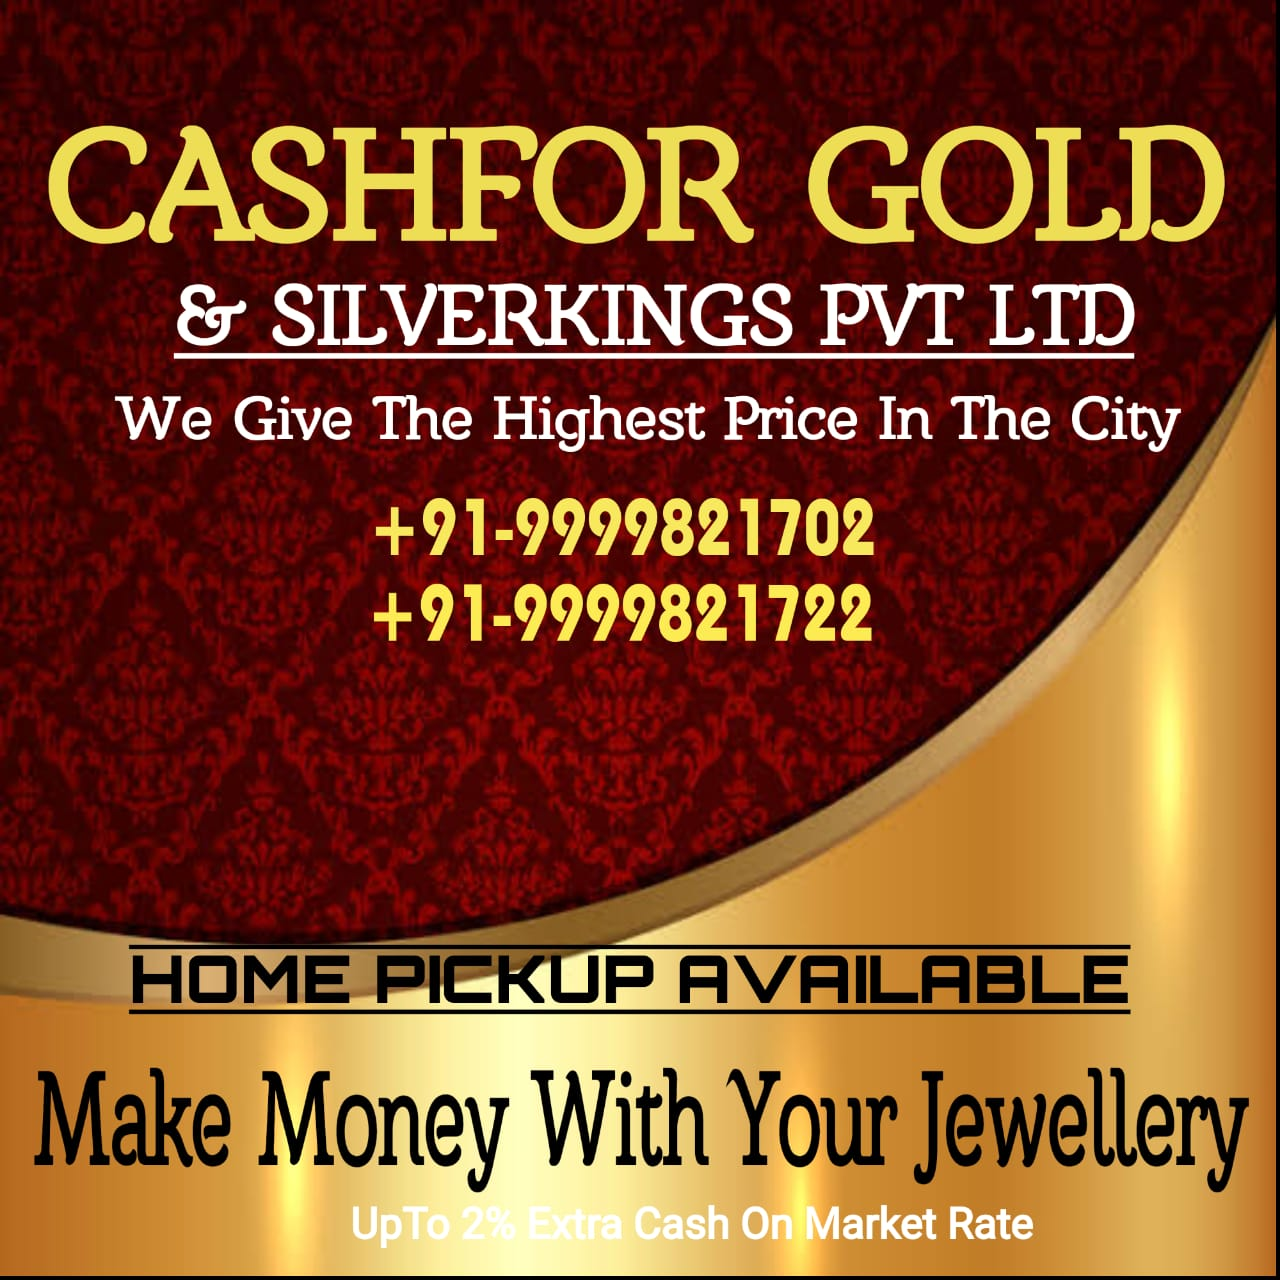 Cash for gold in Gaziabad